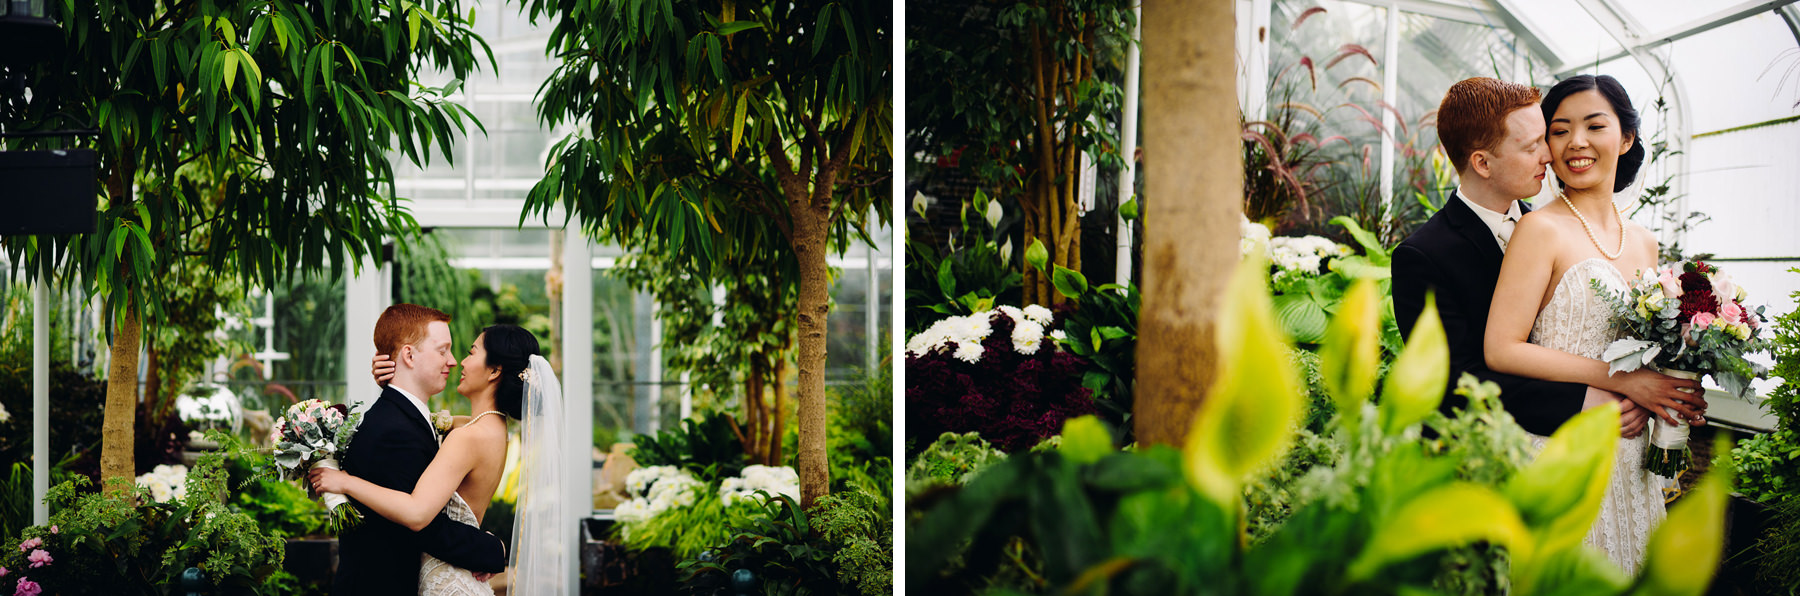 volunteer park conservatory wedding portraits